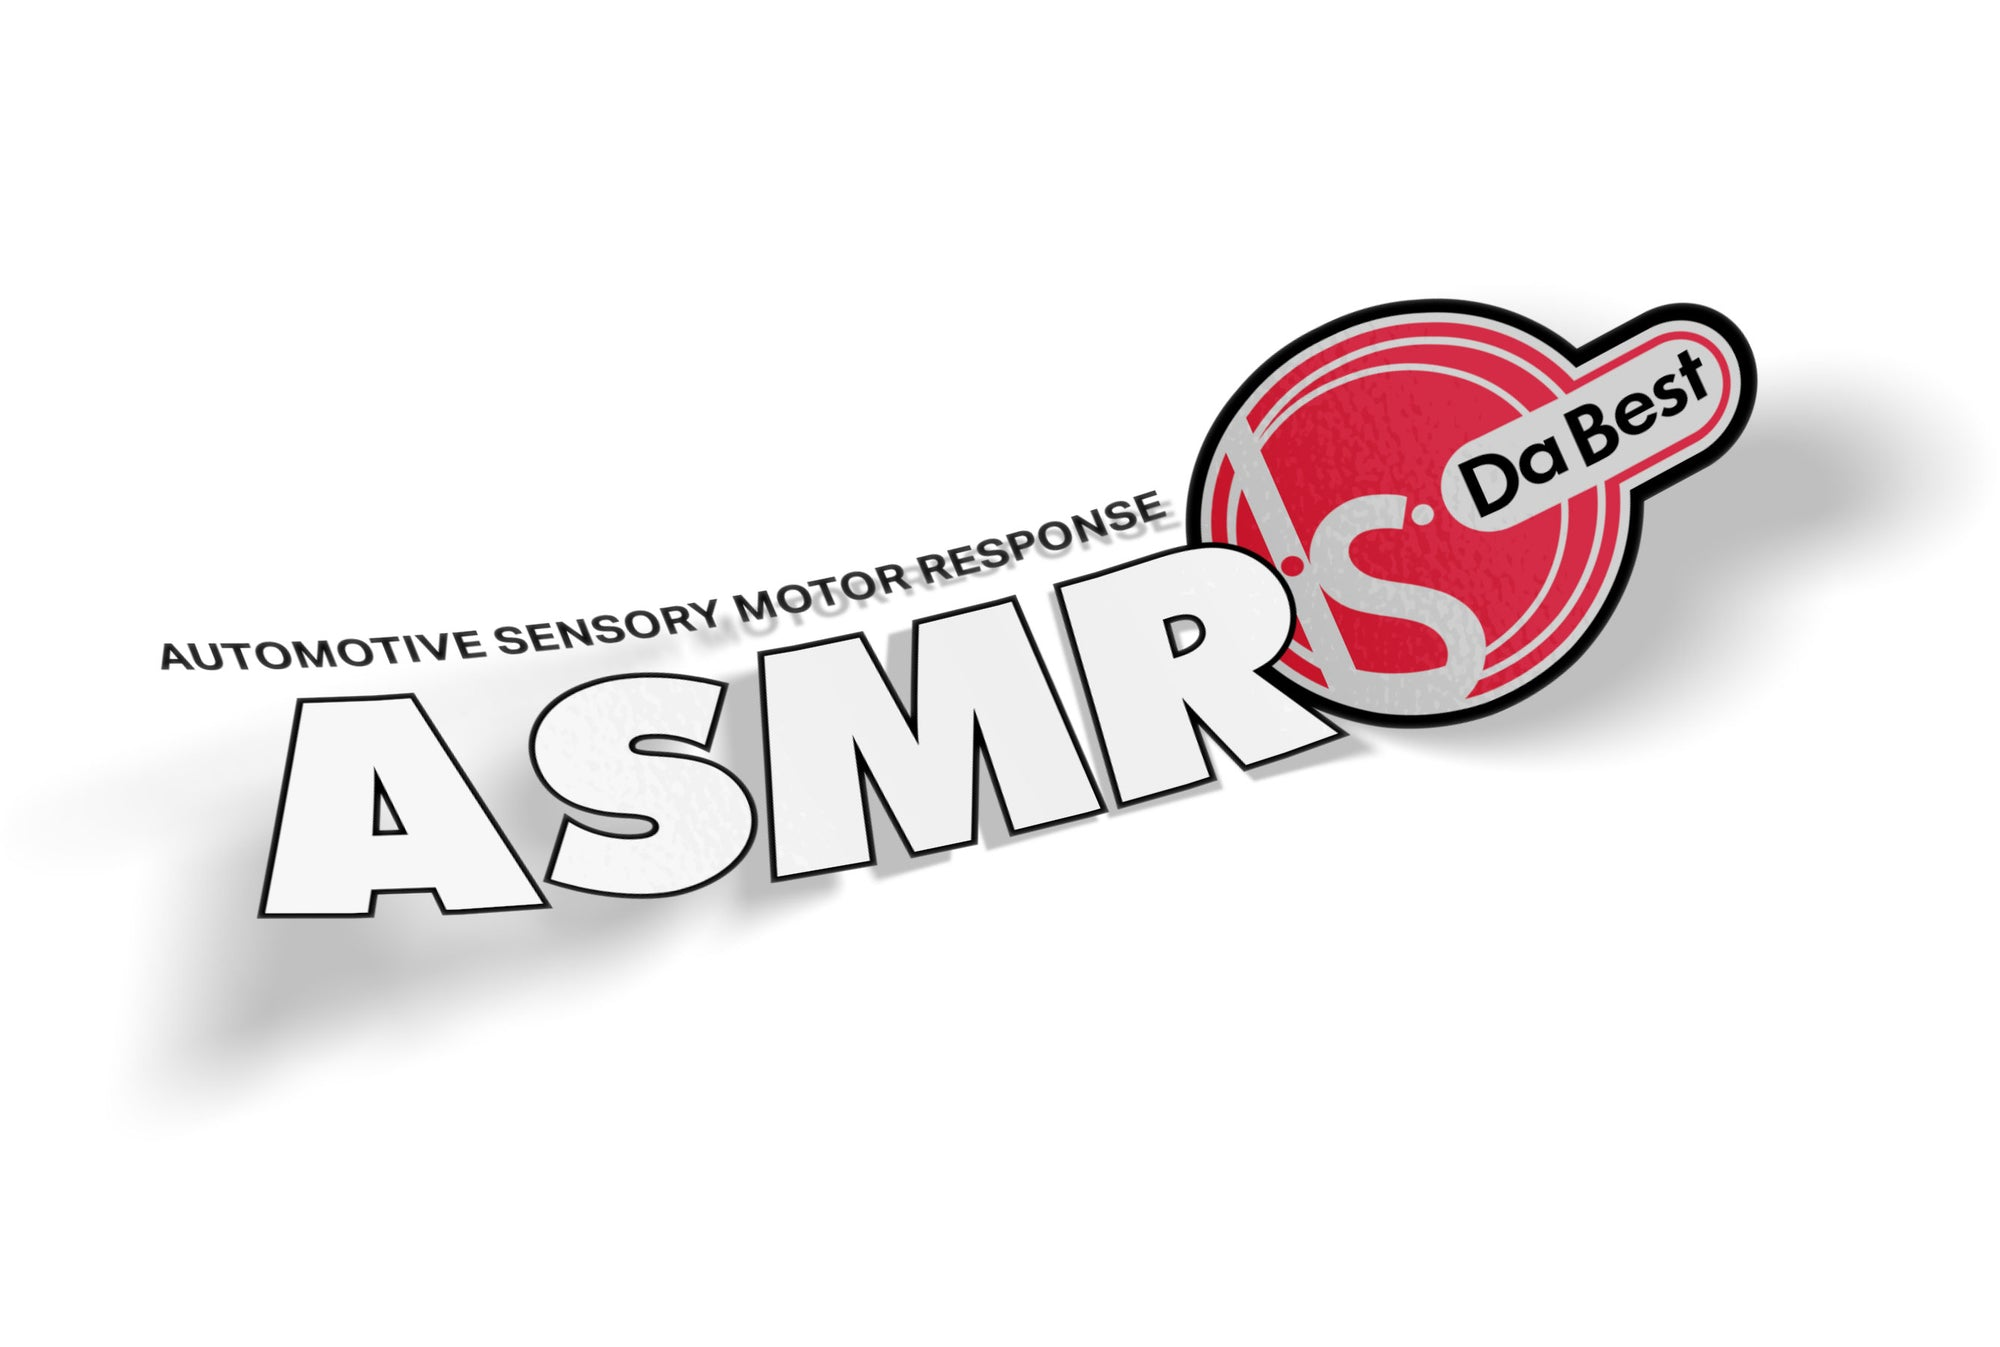 logic limited corp ASM Yokohama parody sticker asmr is da best Automotive joke sticker original